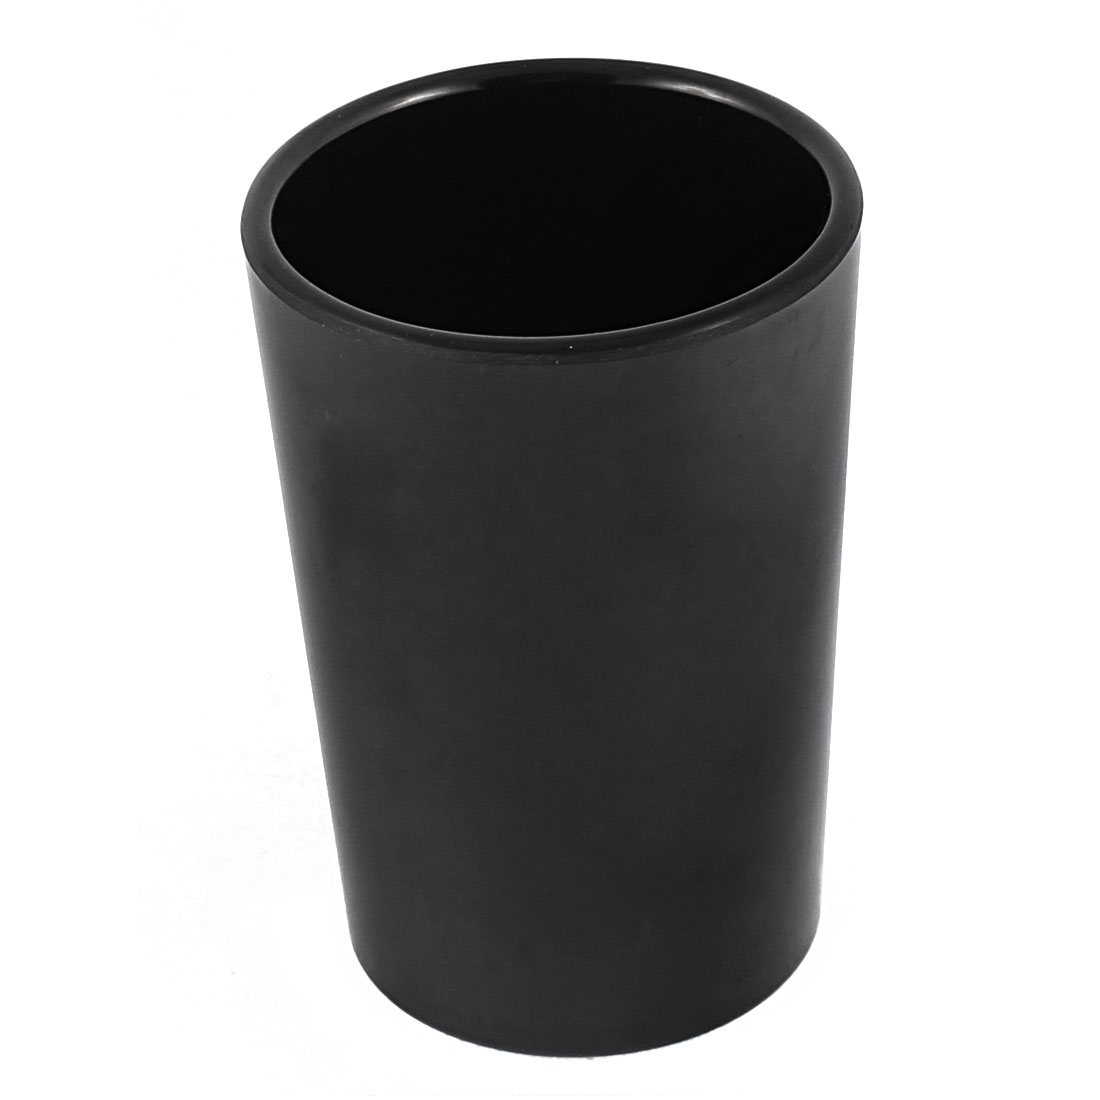 Home Gargle Water Tea Drinking Cup Black 10cm Height